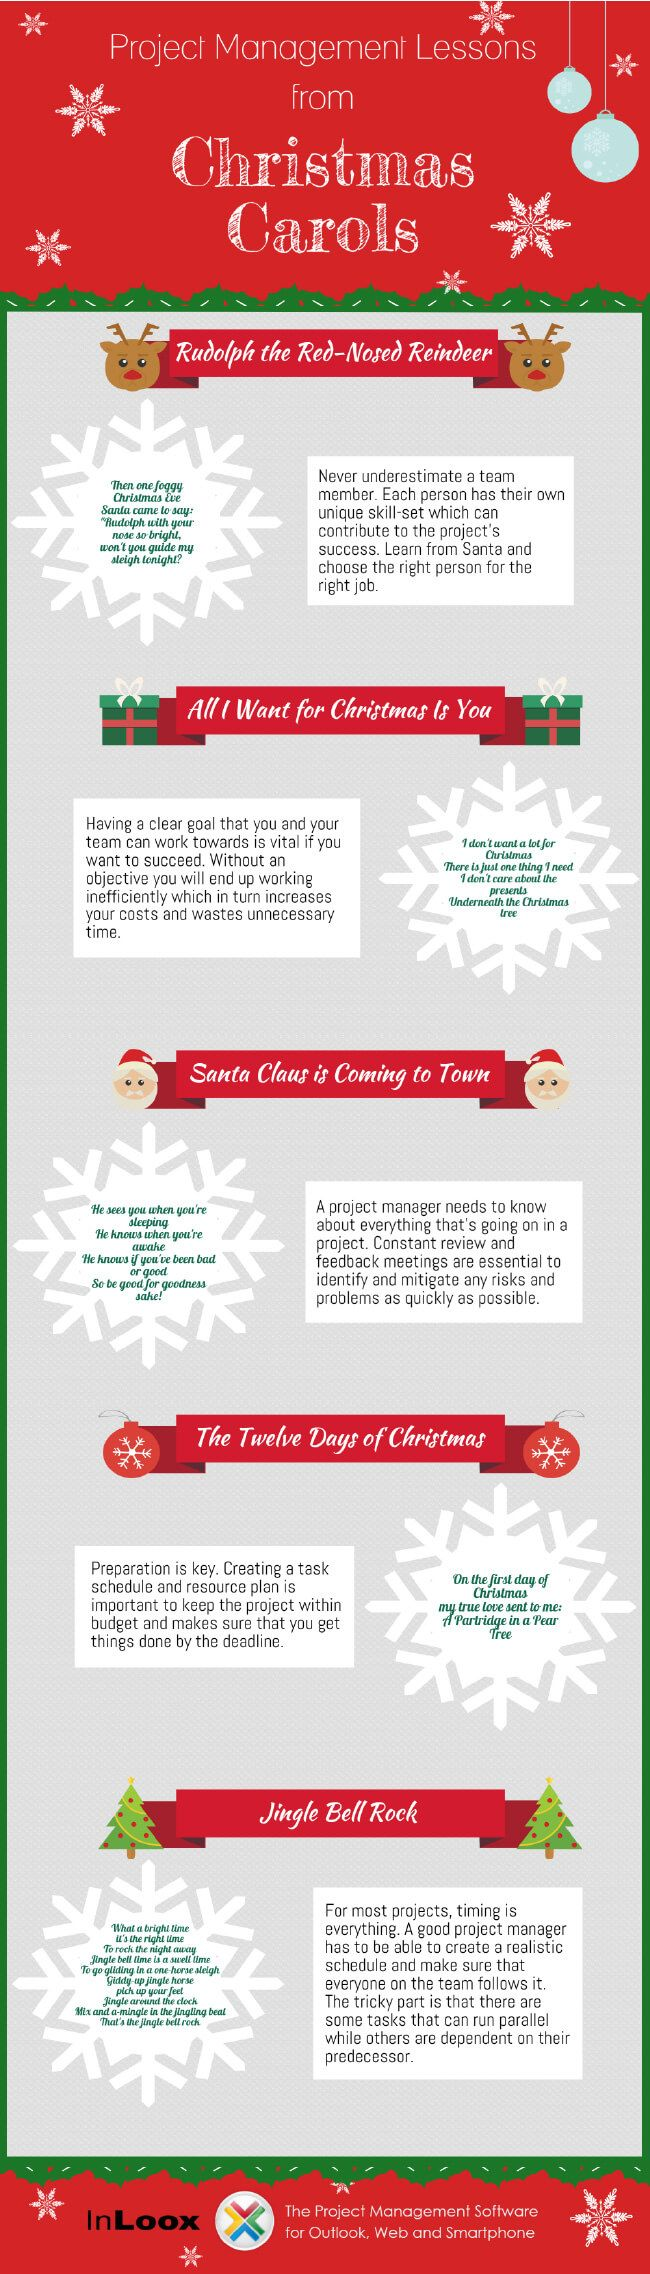 Image titled project management lessons from christmas carols